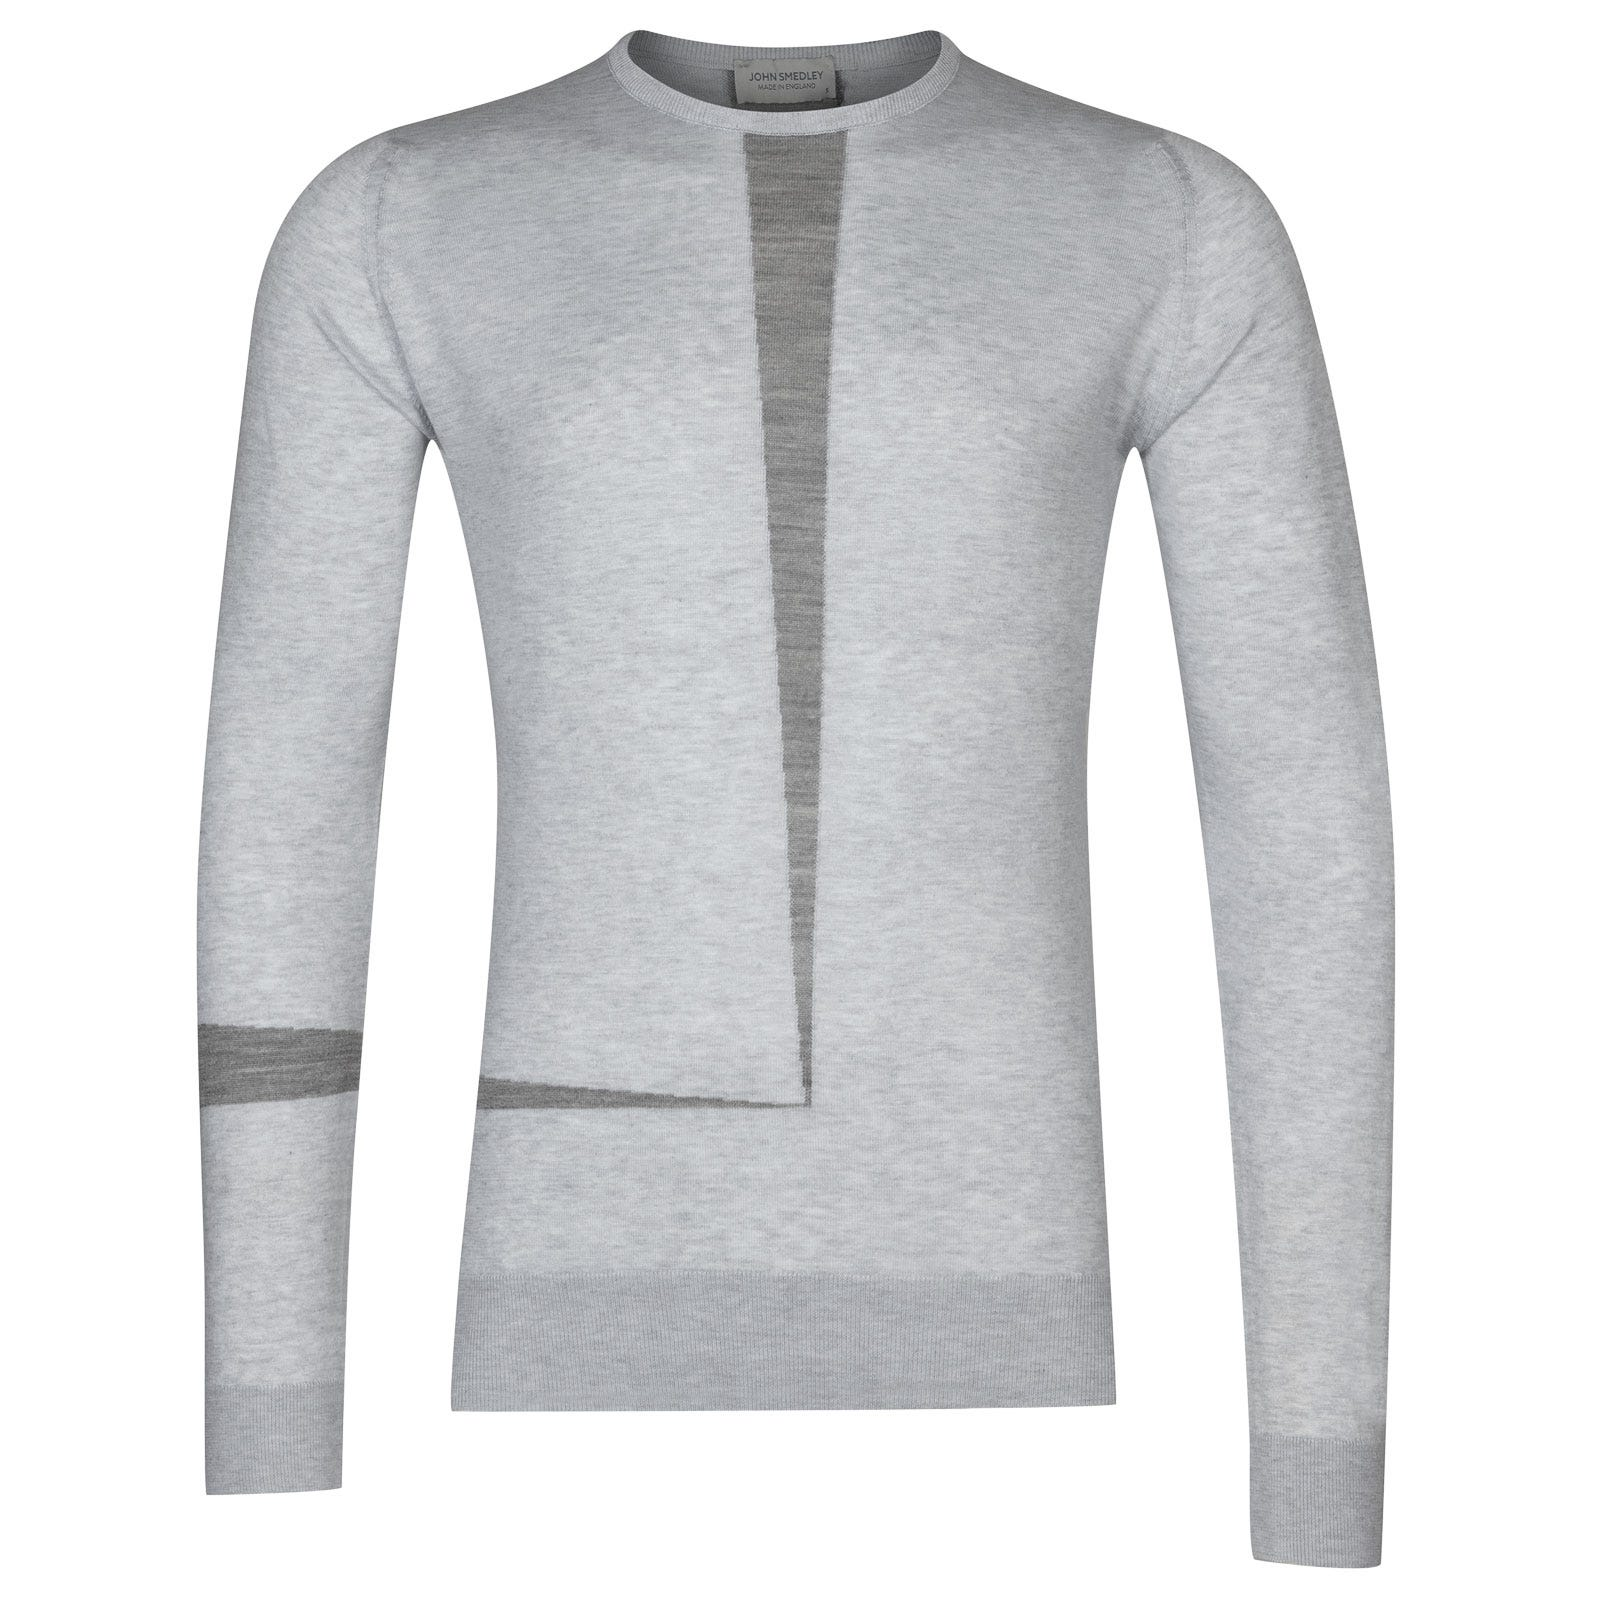 John Smedley Denys in Feather Grey-Xl